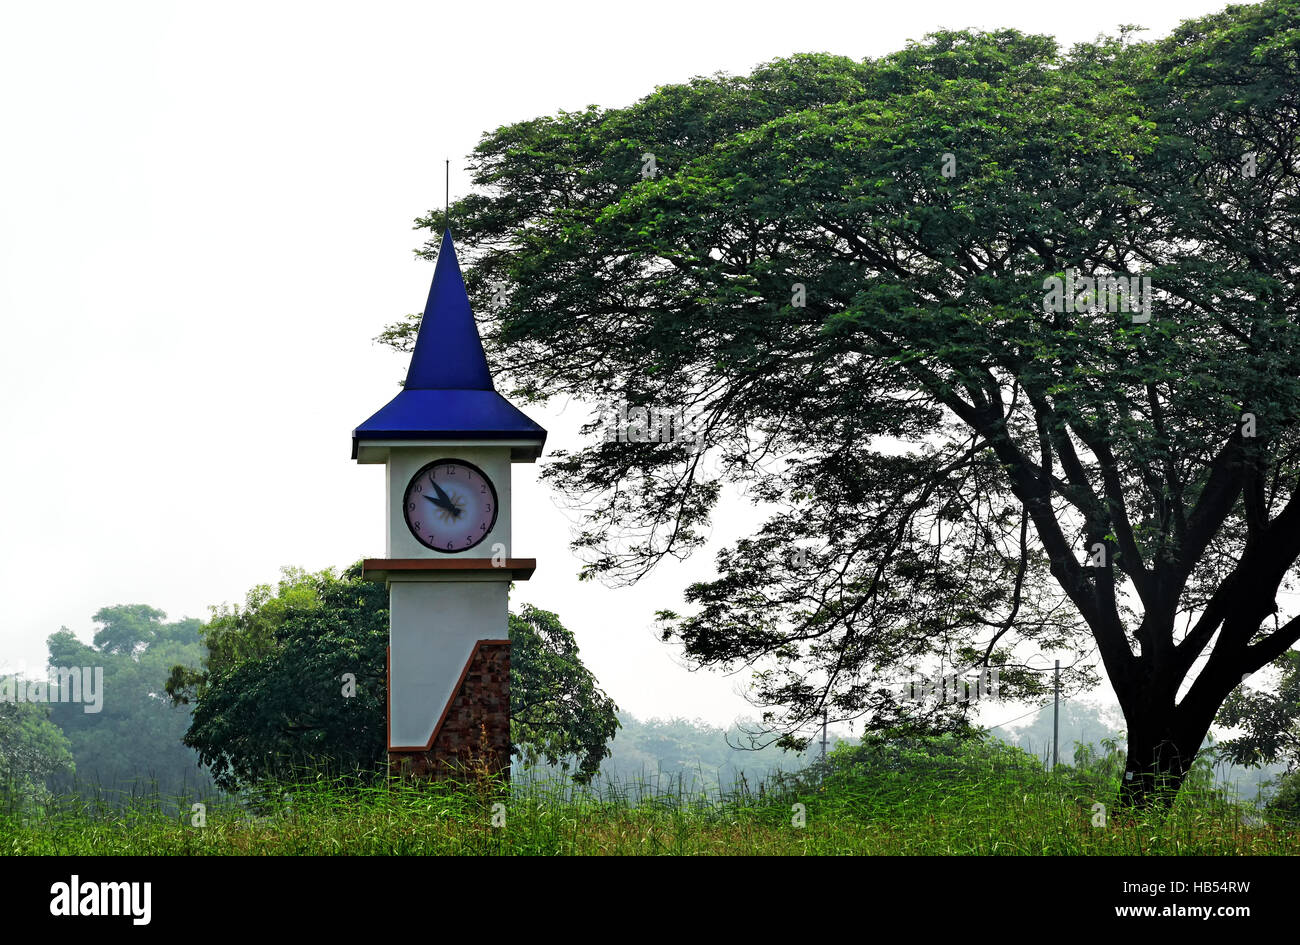 Mini scenic clock tower among vegetation in the countryside of Goa, India - Stock Image